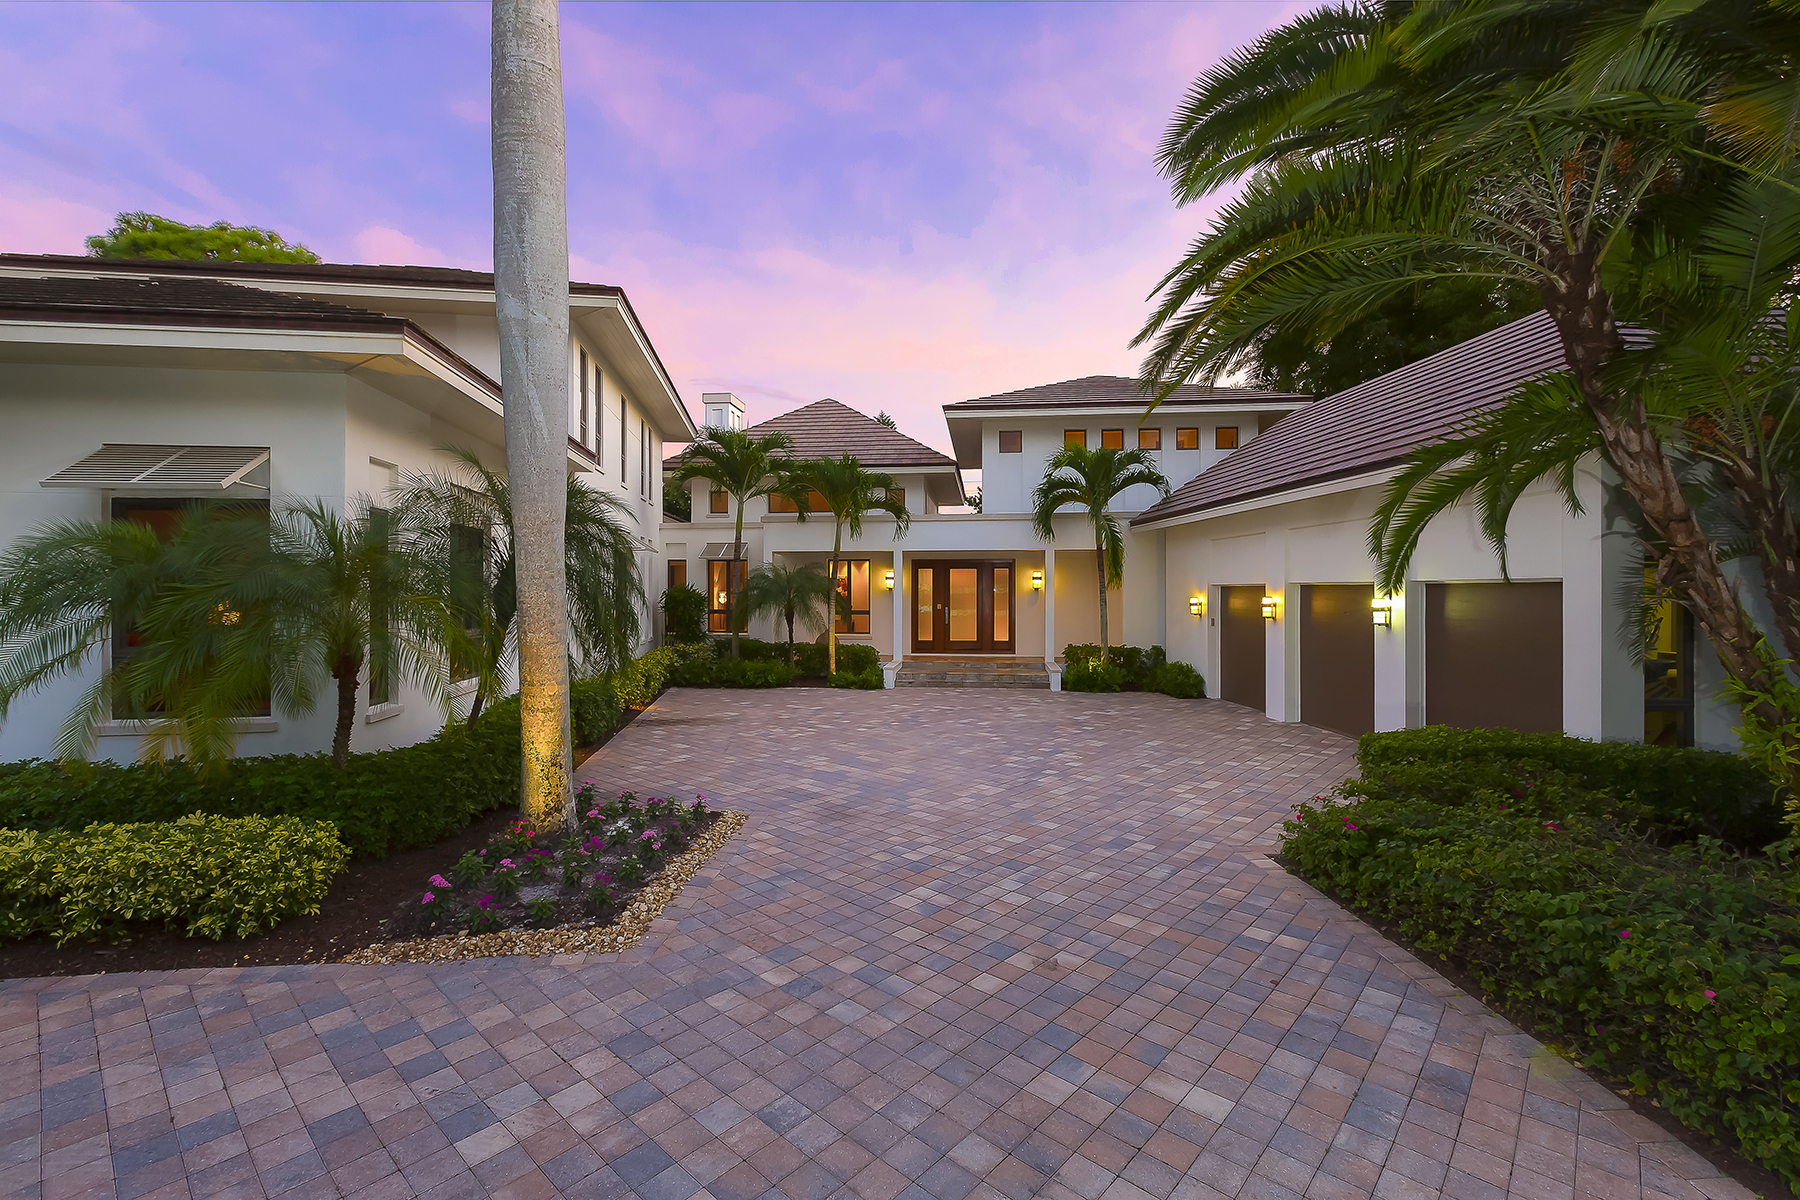 Single Family Home for Sale at COQUINA SANDS 396 Yucca Rd Coquina Sands, Naples, Florida, 34102 United States